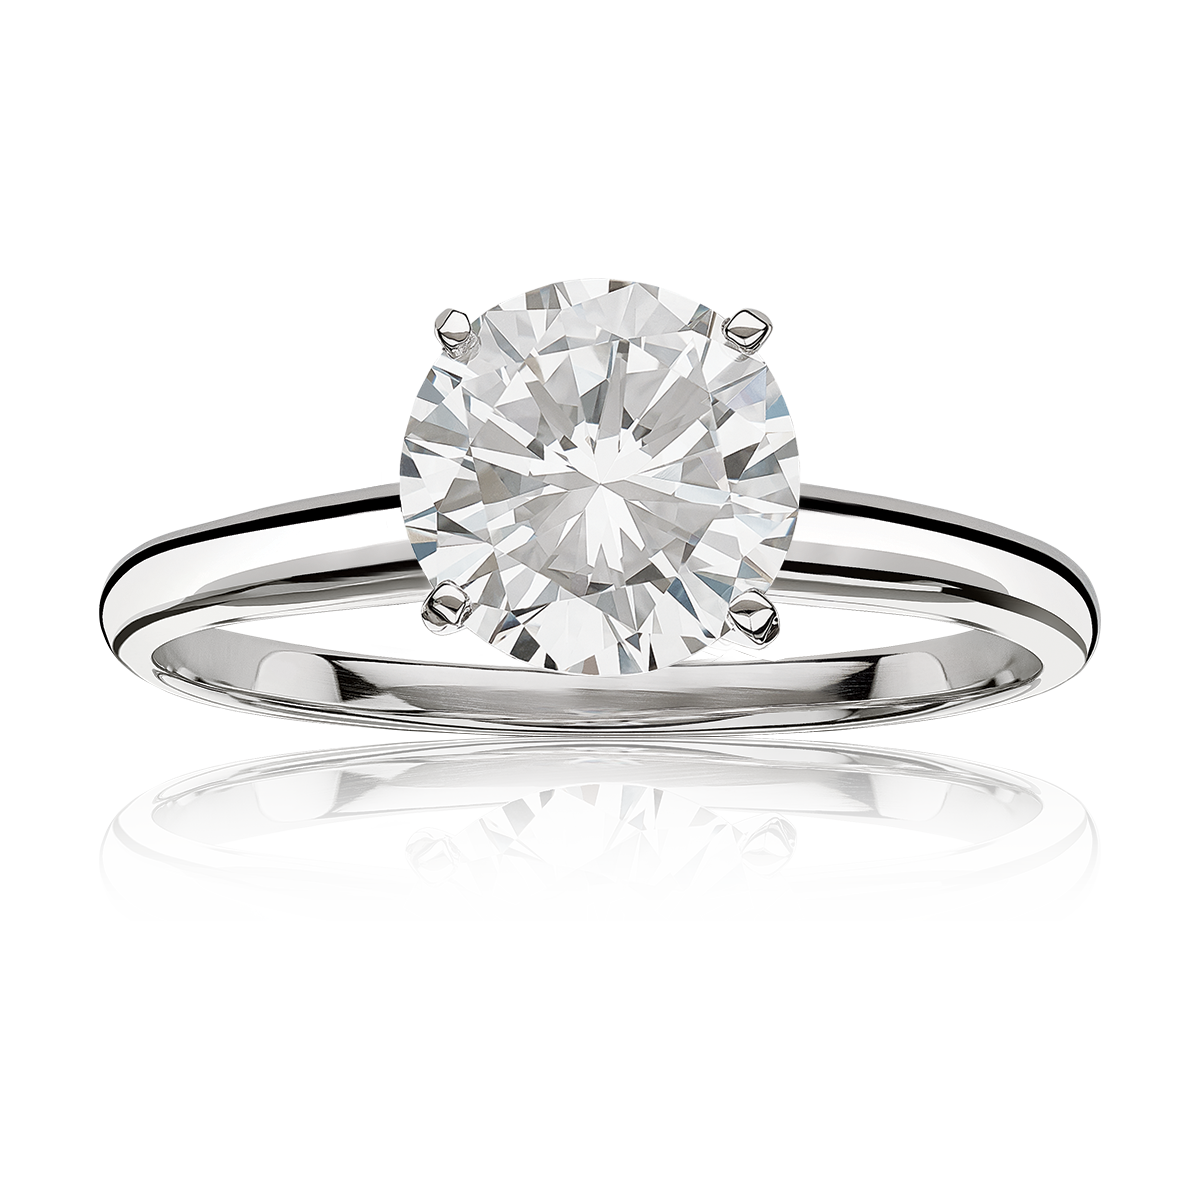 Lab Grown 2ct. Diamond Classic Round Solitaire Engagement Ring in 14k White Gold